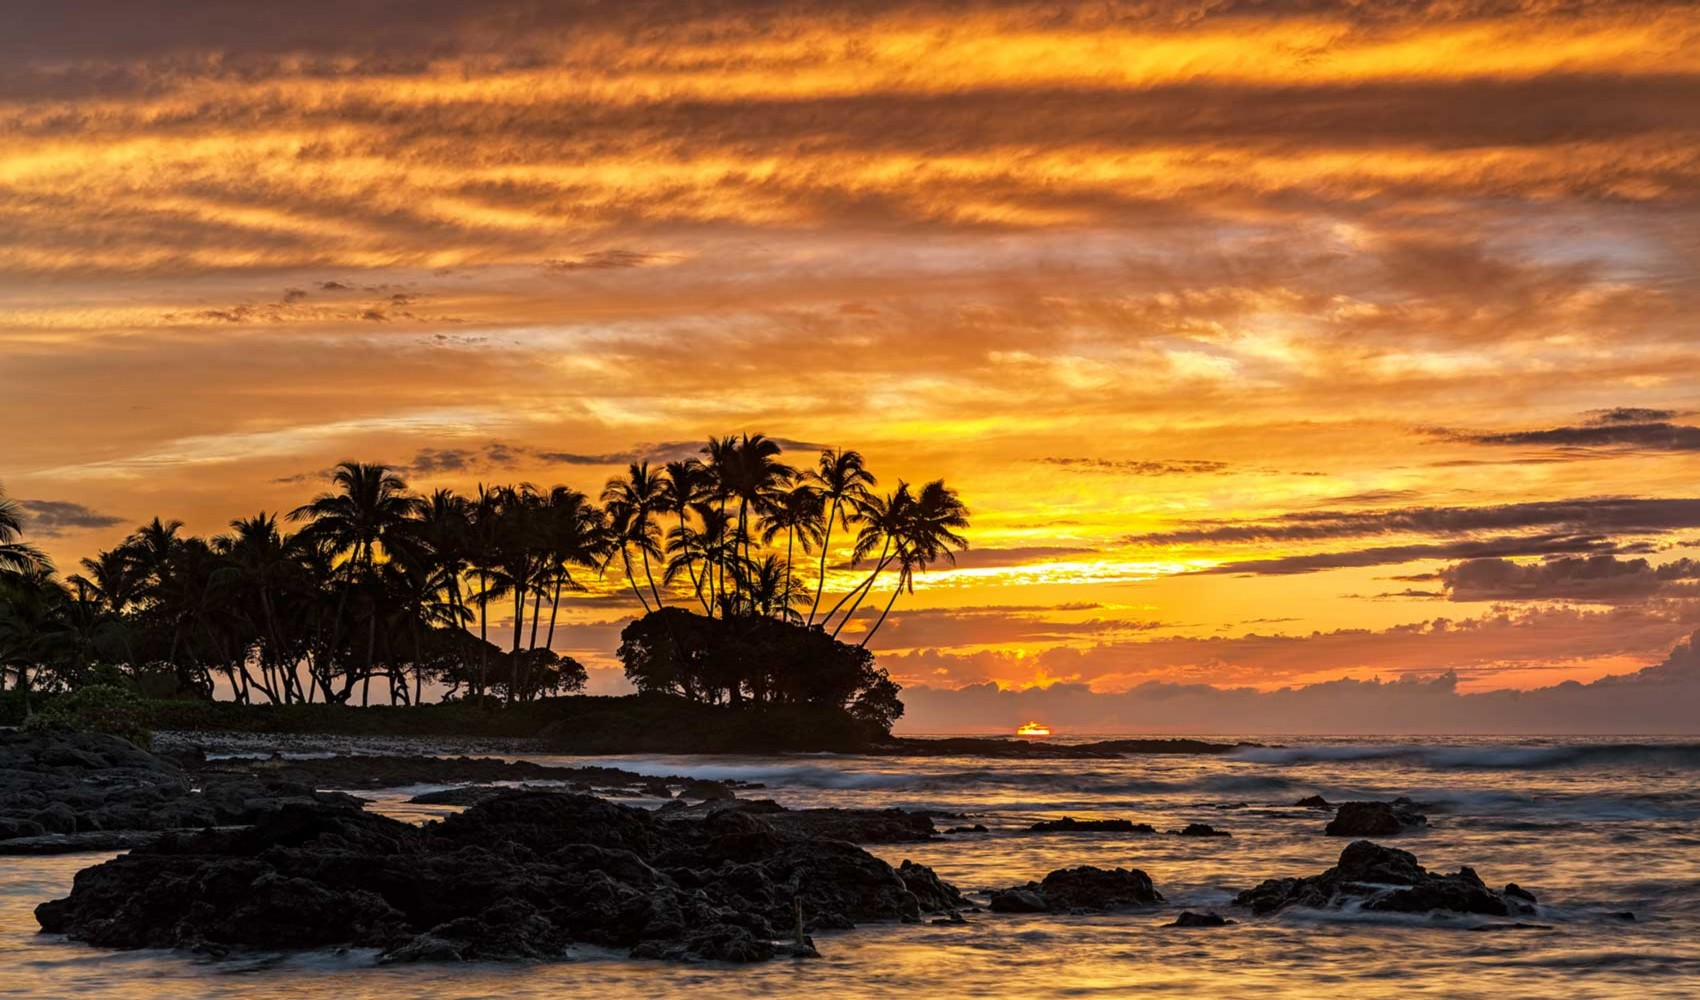 """View from the oceanfront community of Pauoa Beach at Mauna Lani Resort in the heart of the Kohala Coast aka """"Gold Coast"""" because of its many toney luxury resorts and homes."""